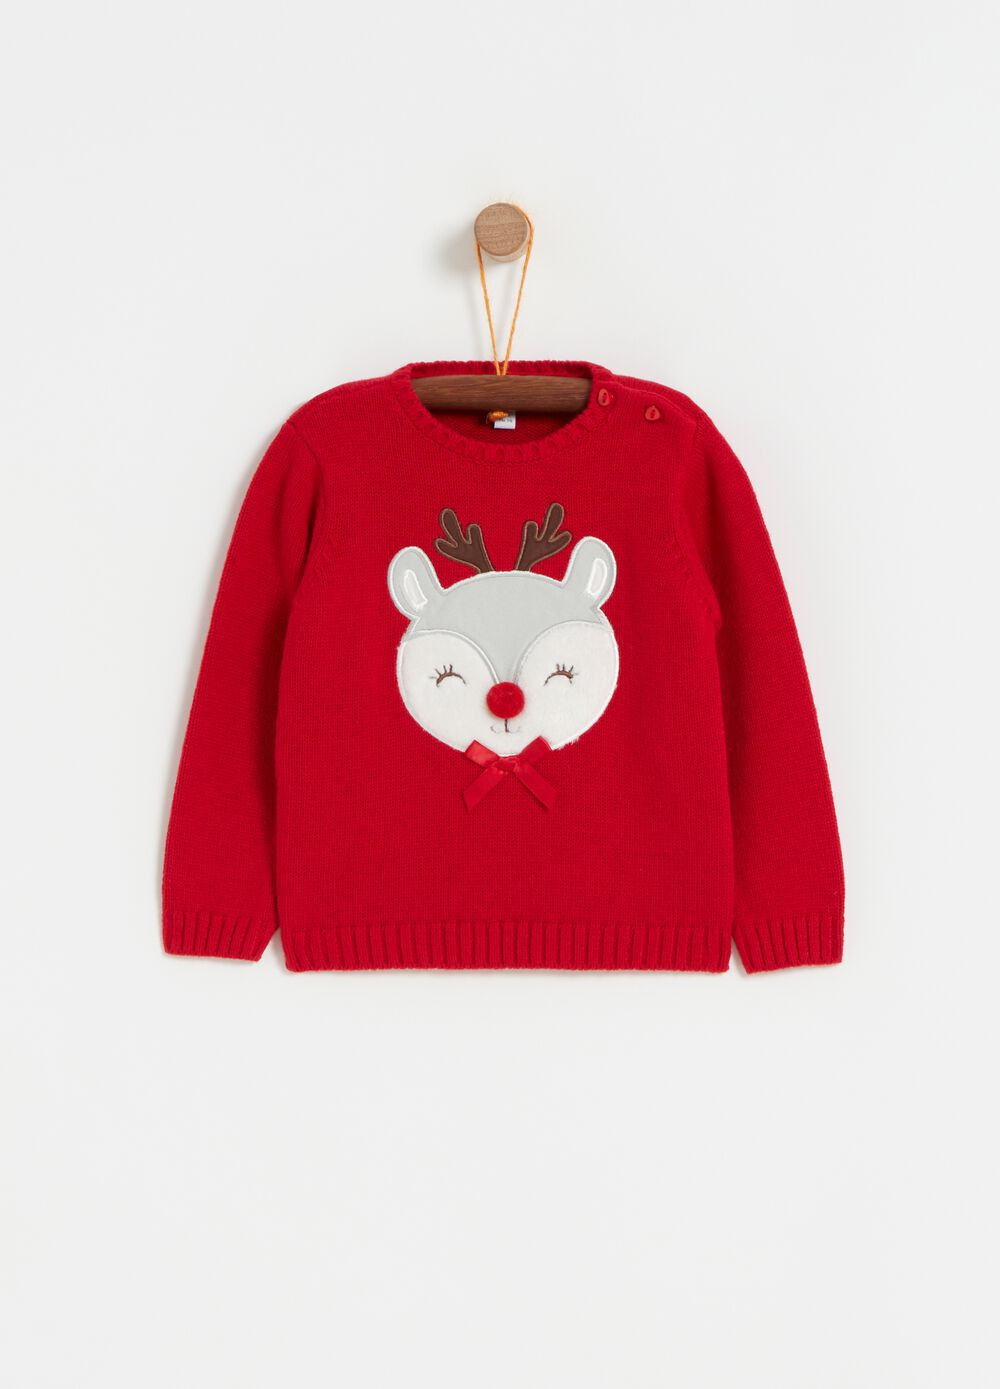 Knitted top with deer embroidery and bow